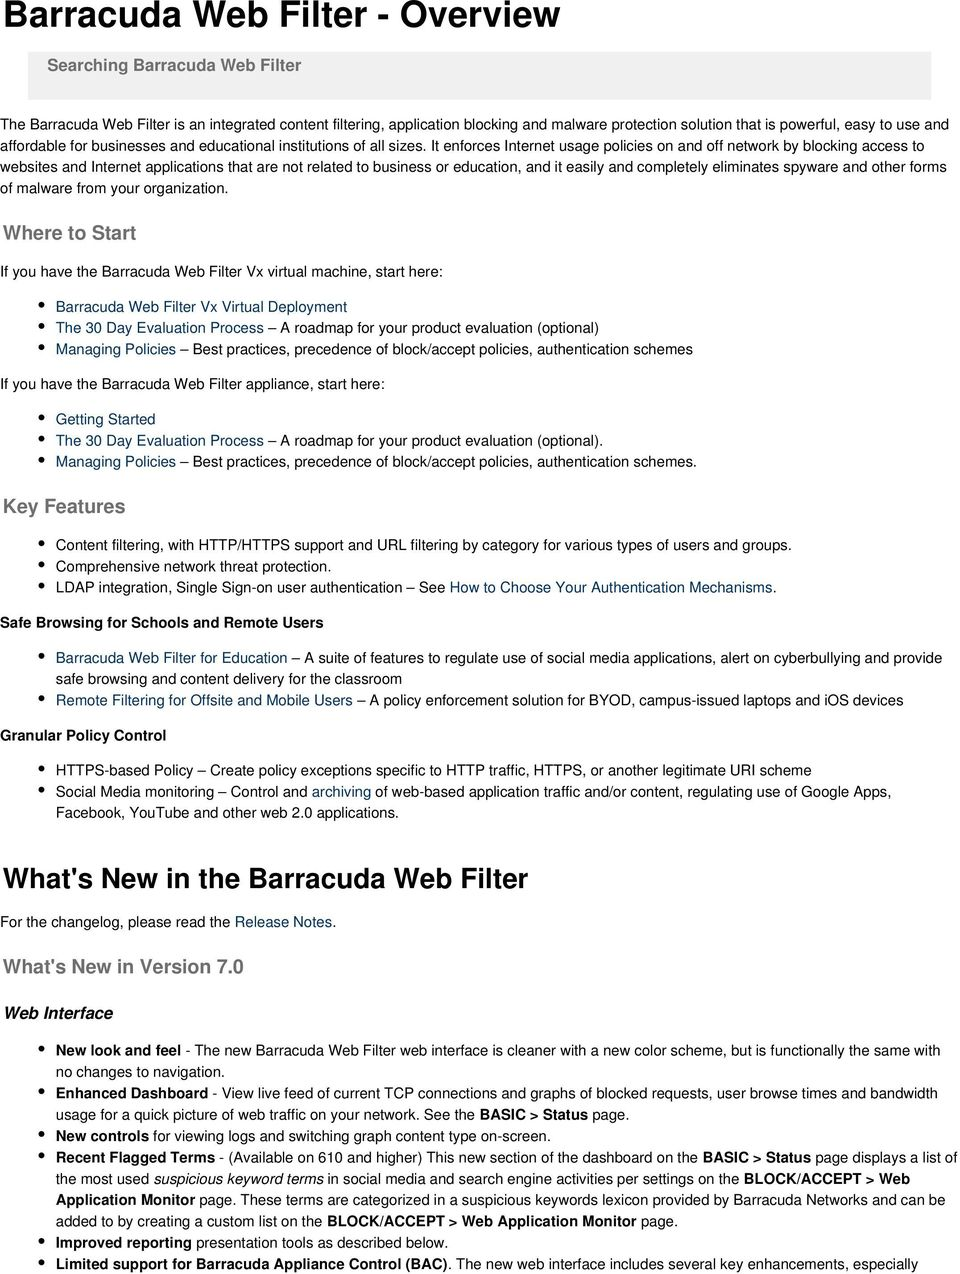 how to turn off barracuda web filter